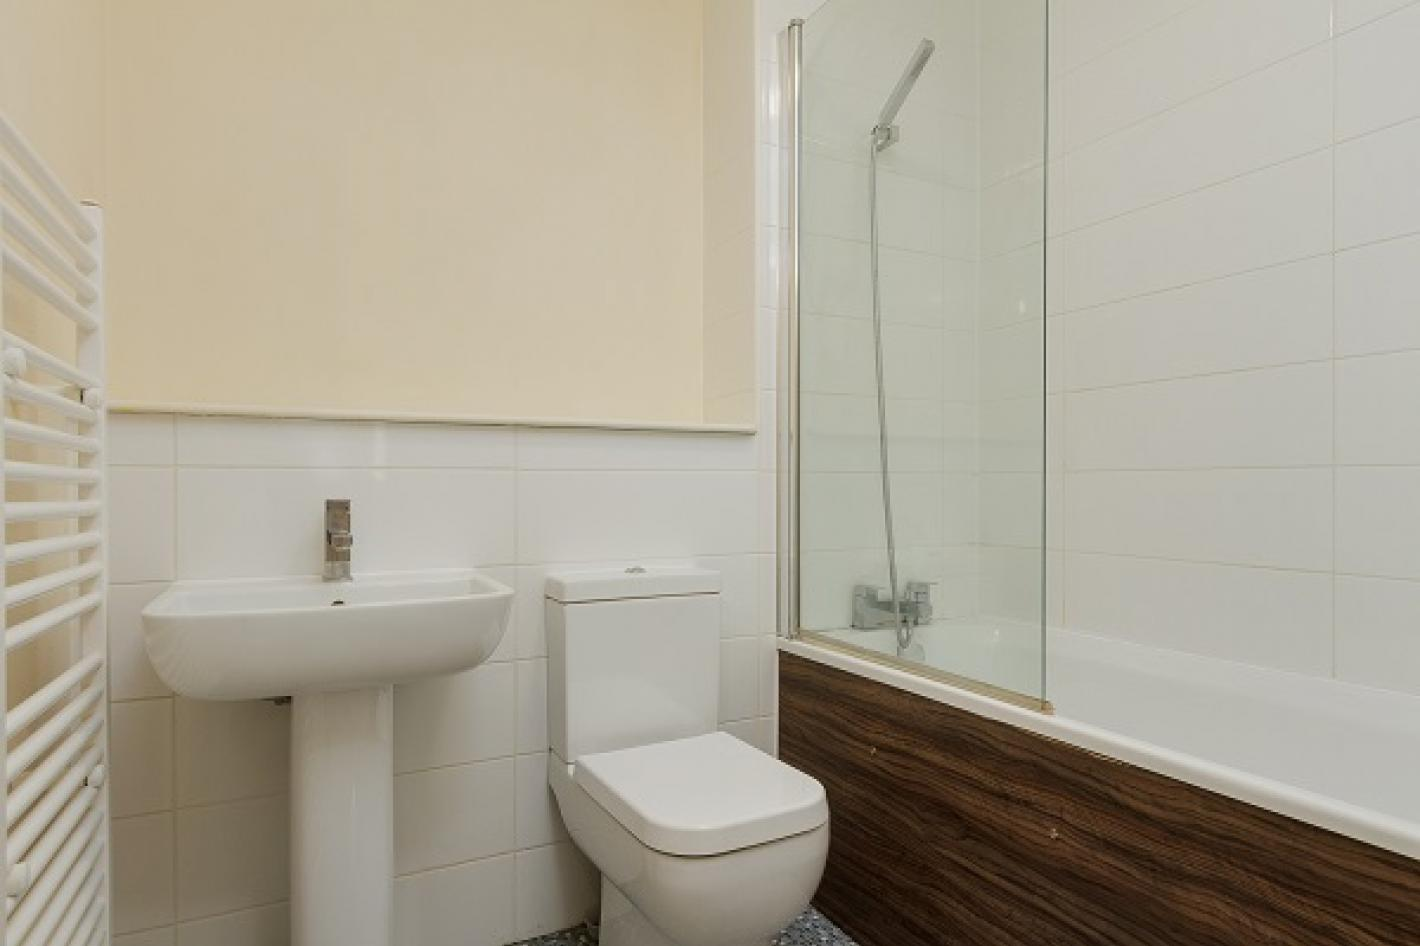 Bathroom beige and white tiled walls